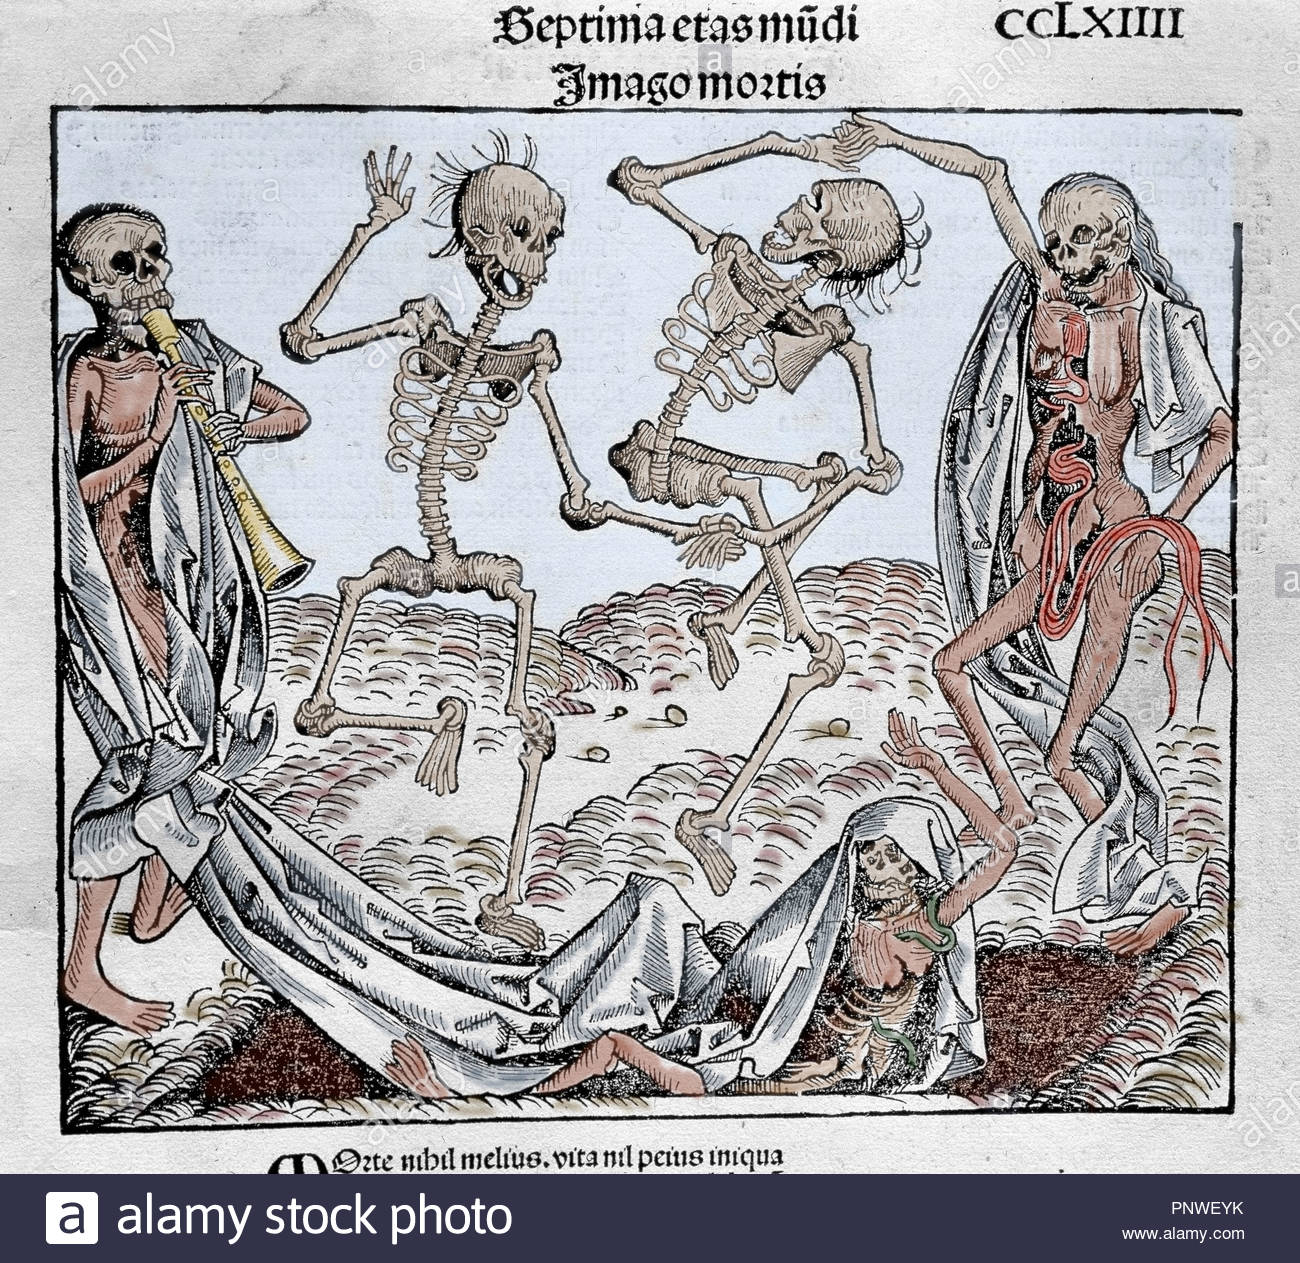 The Dance of Death (1493) by Michael Wolgemut, from the Liber chronicarum by